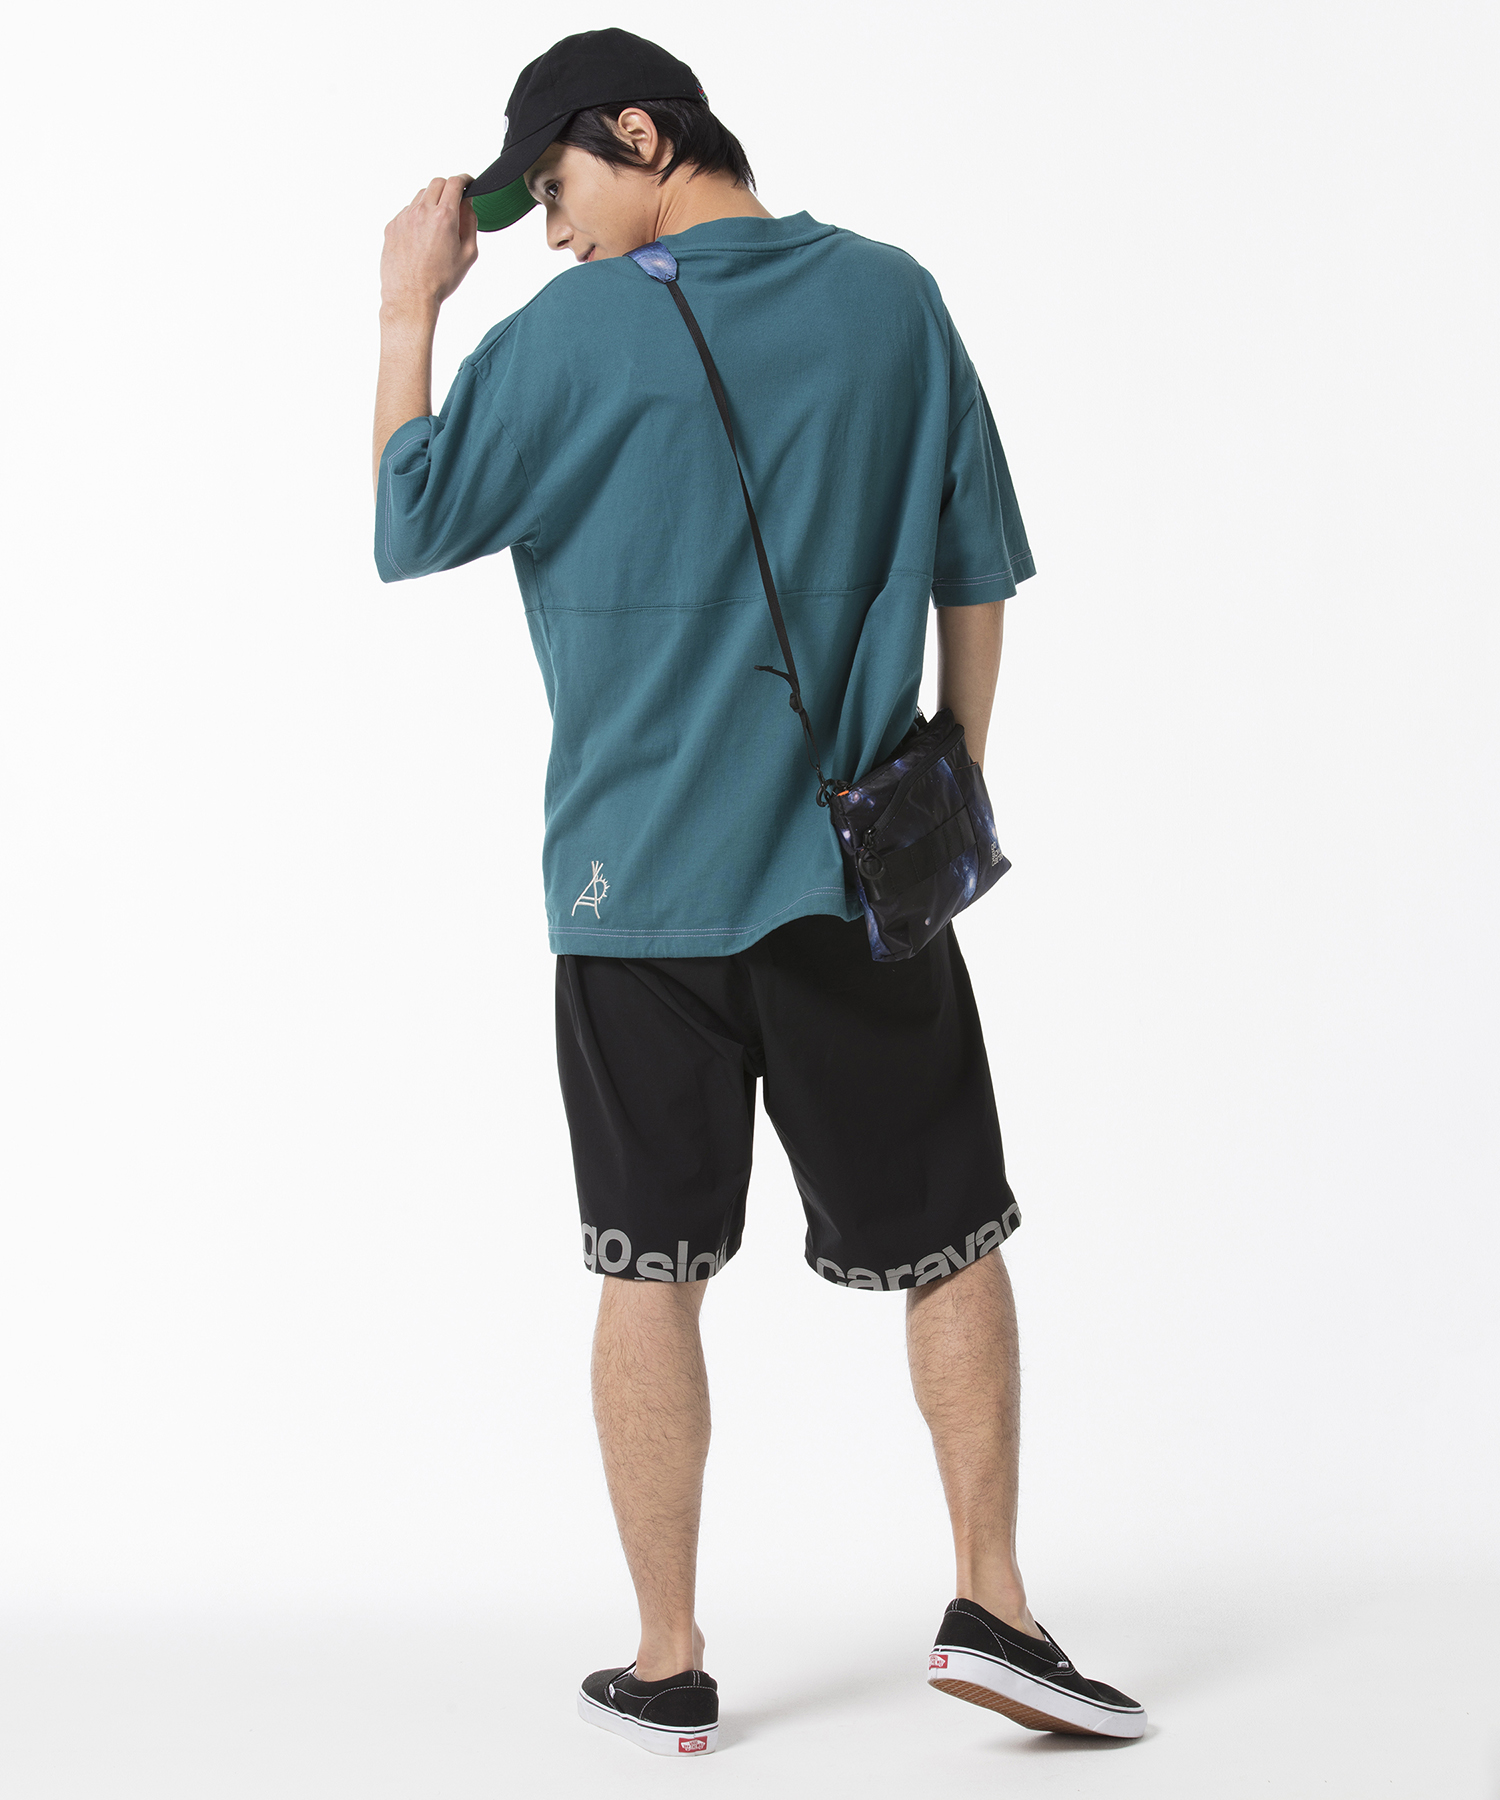 2019SS go slow caravan Coordinate MENS_14